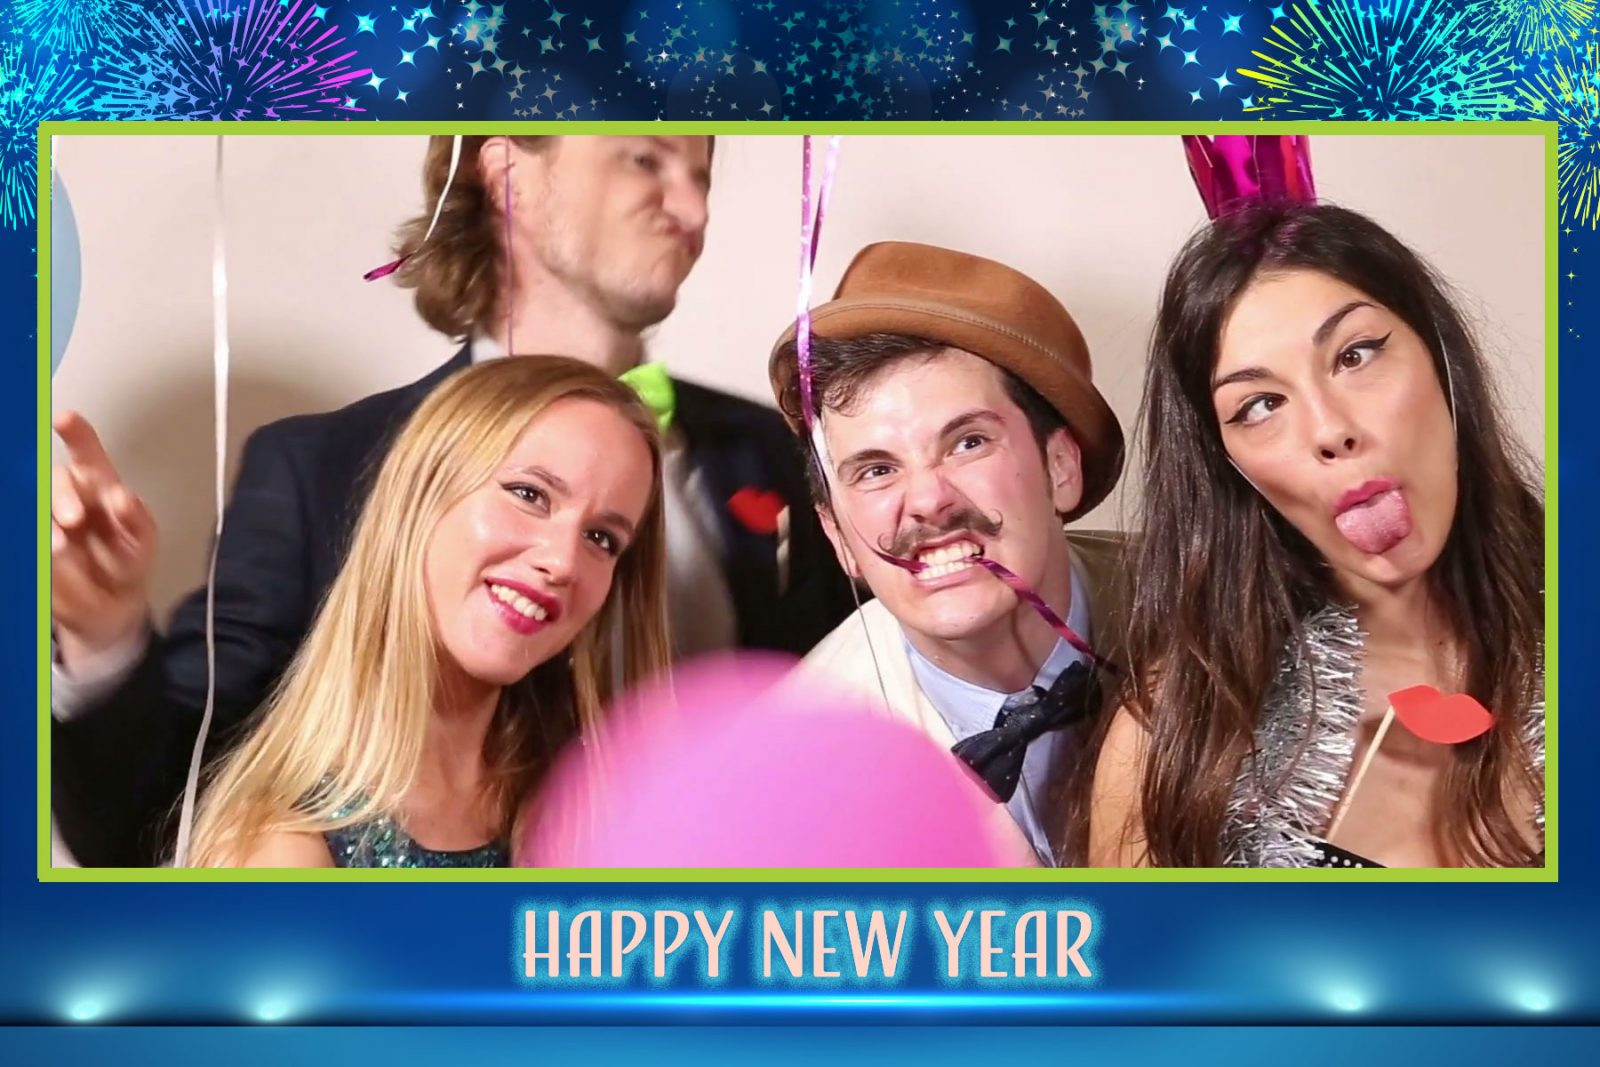 photo booth image with custom new years template